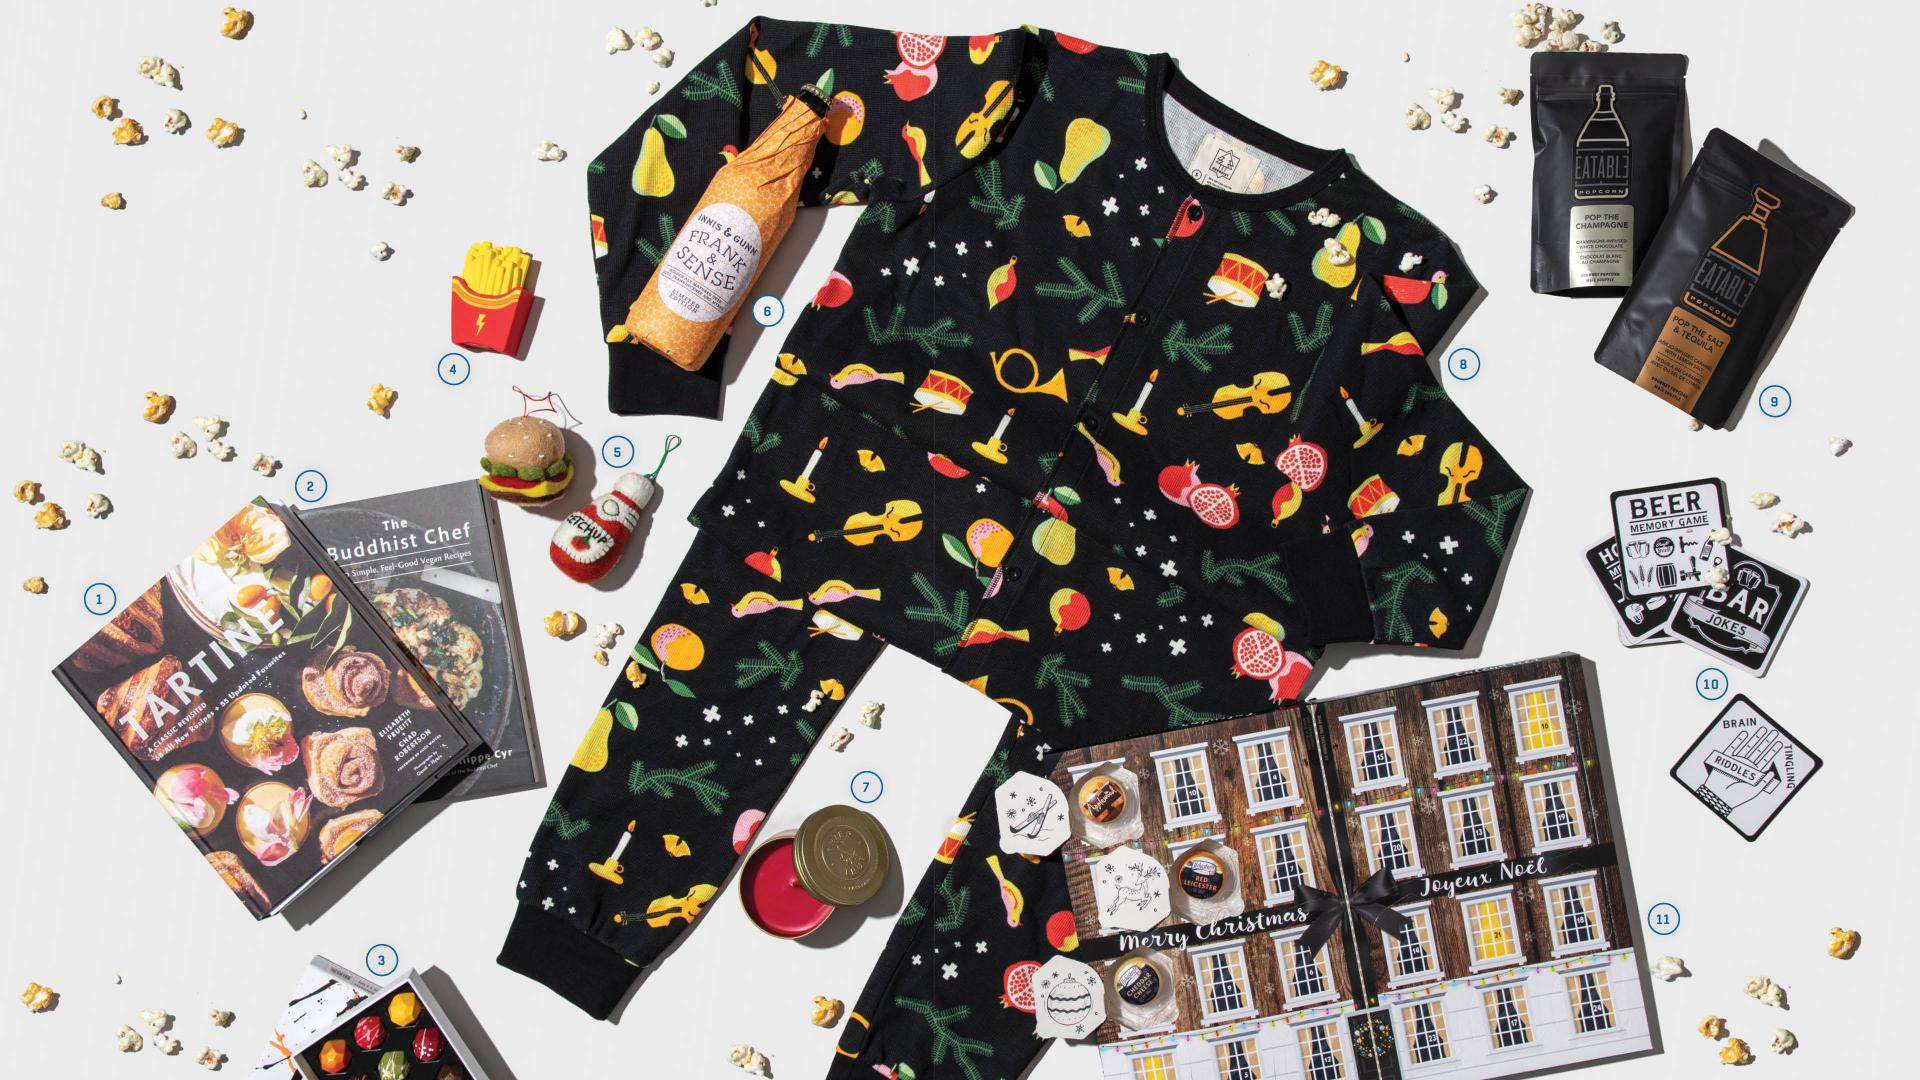 The 2019 Foodism Gift Guide